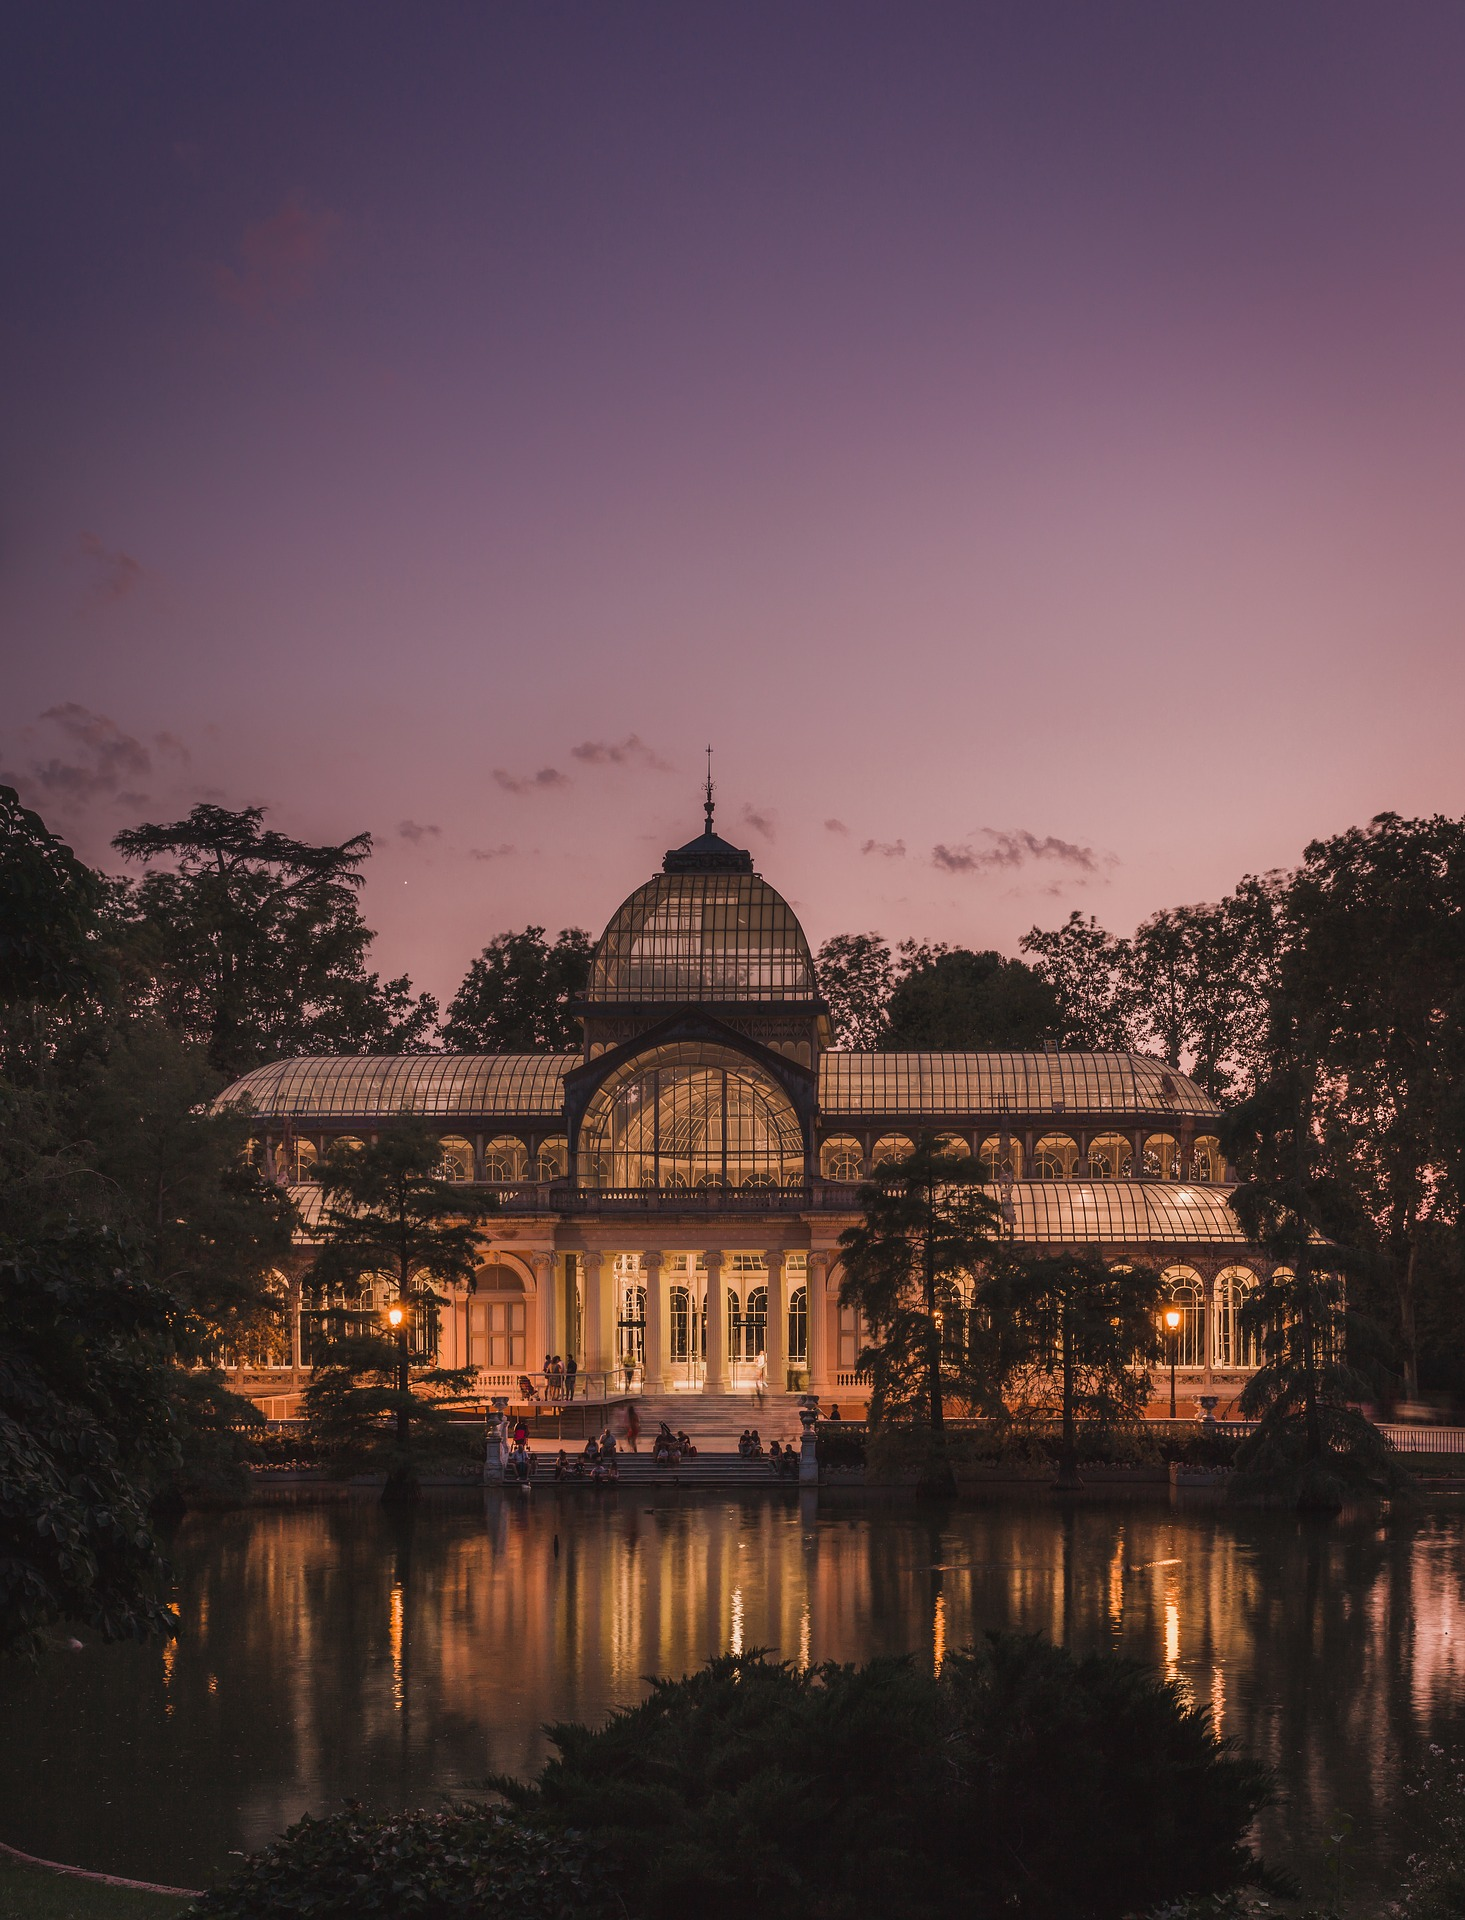 The Crystal Palace is one of the iconic landmarks of Madrid and one of the free attractions in Madrid